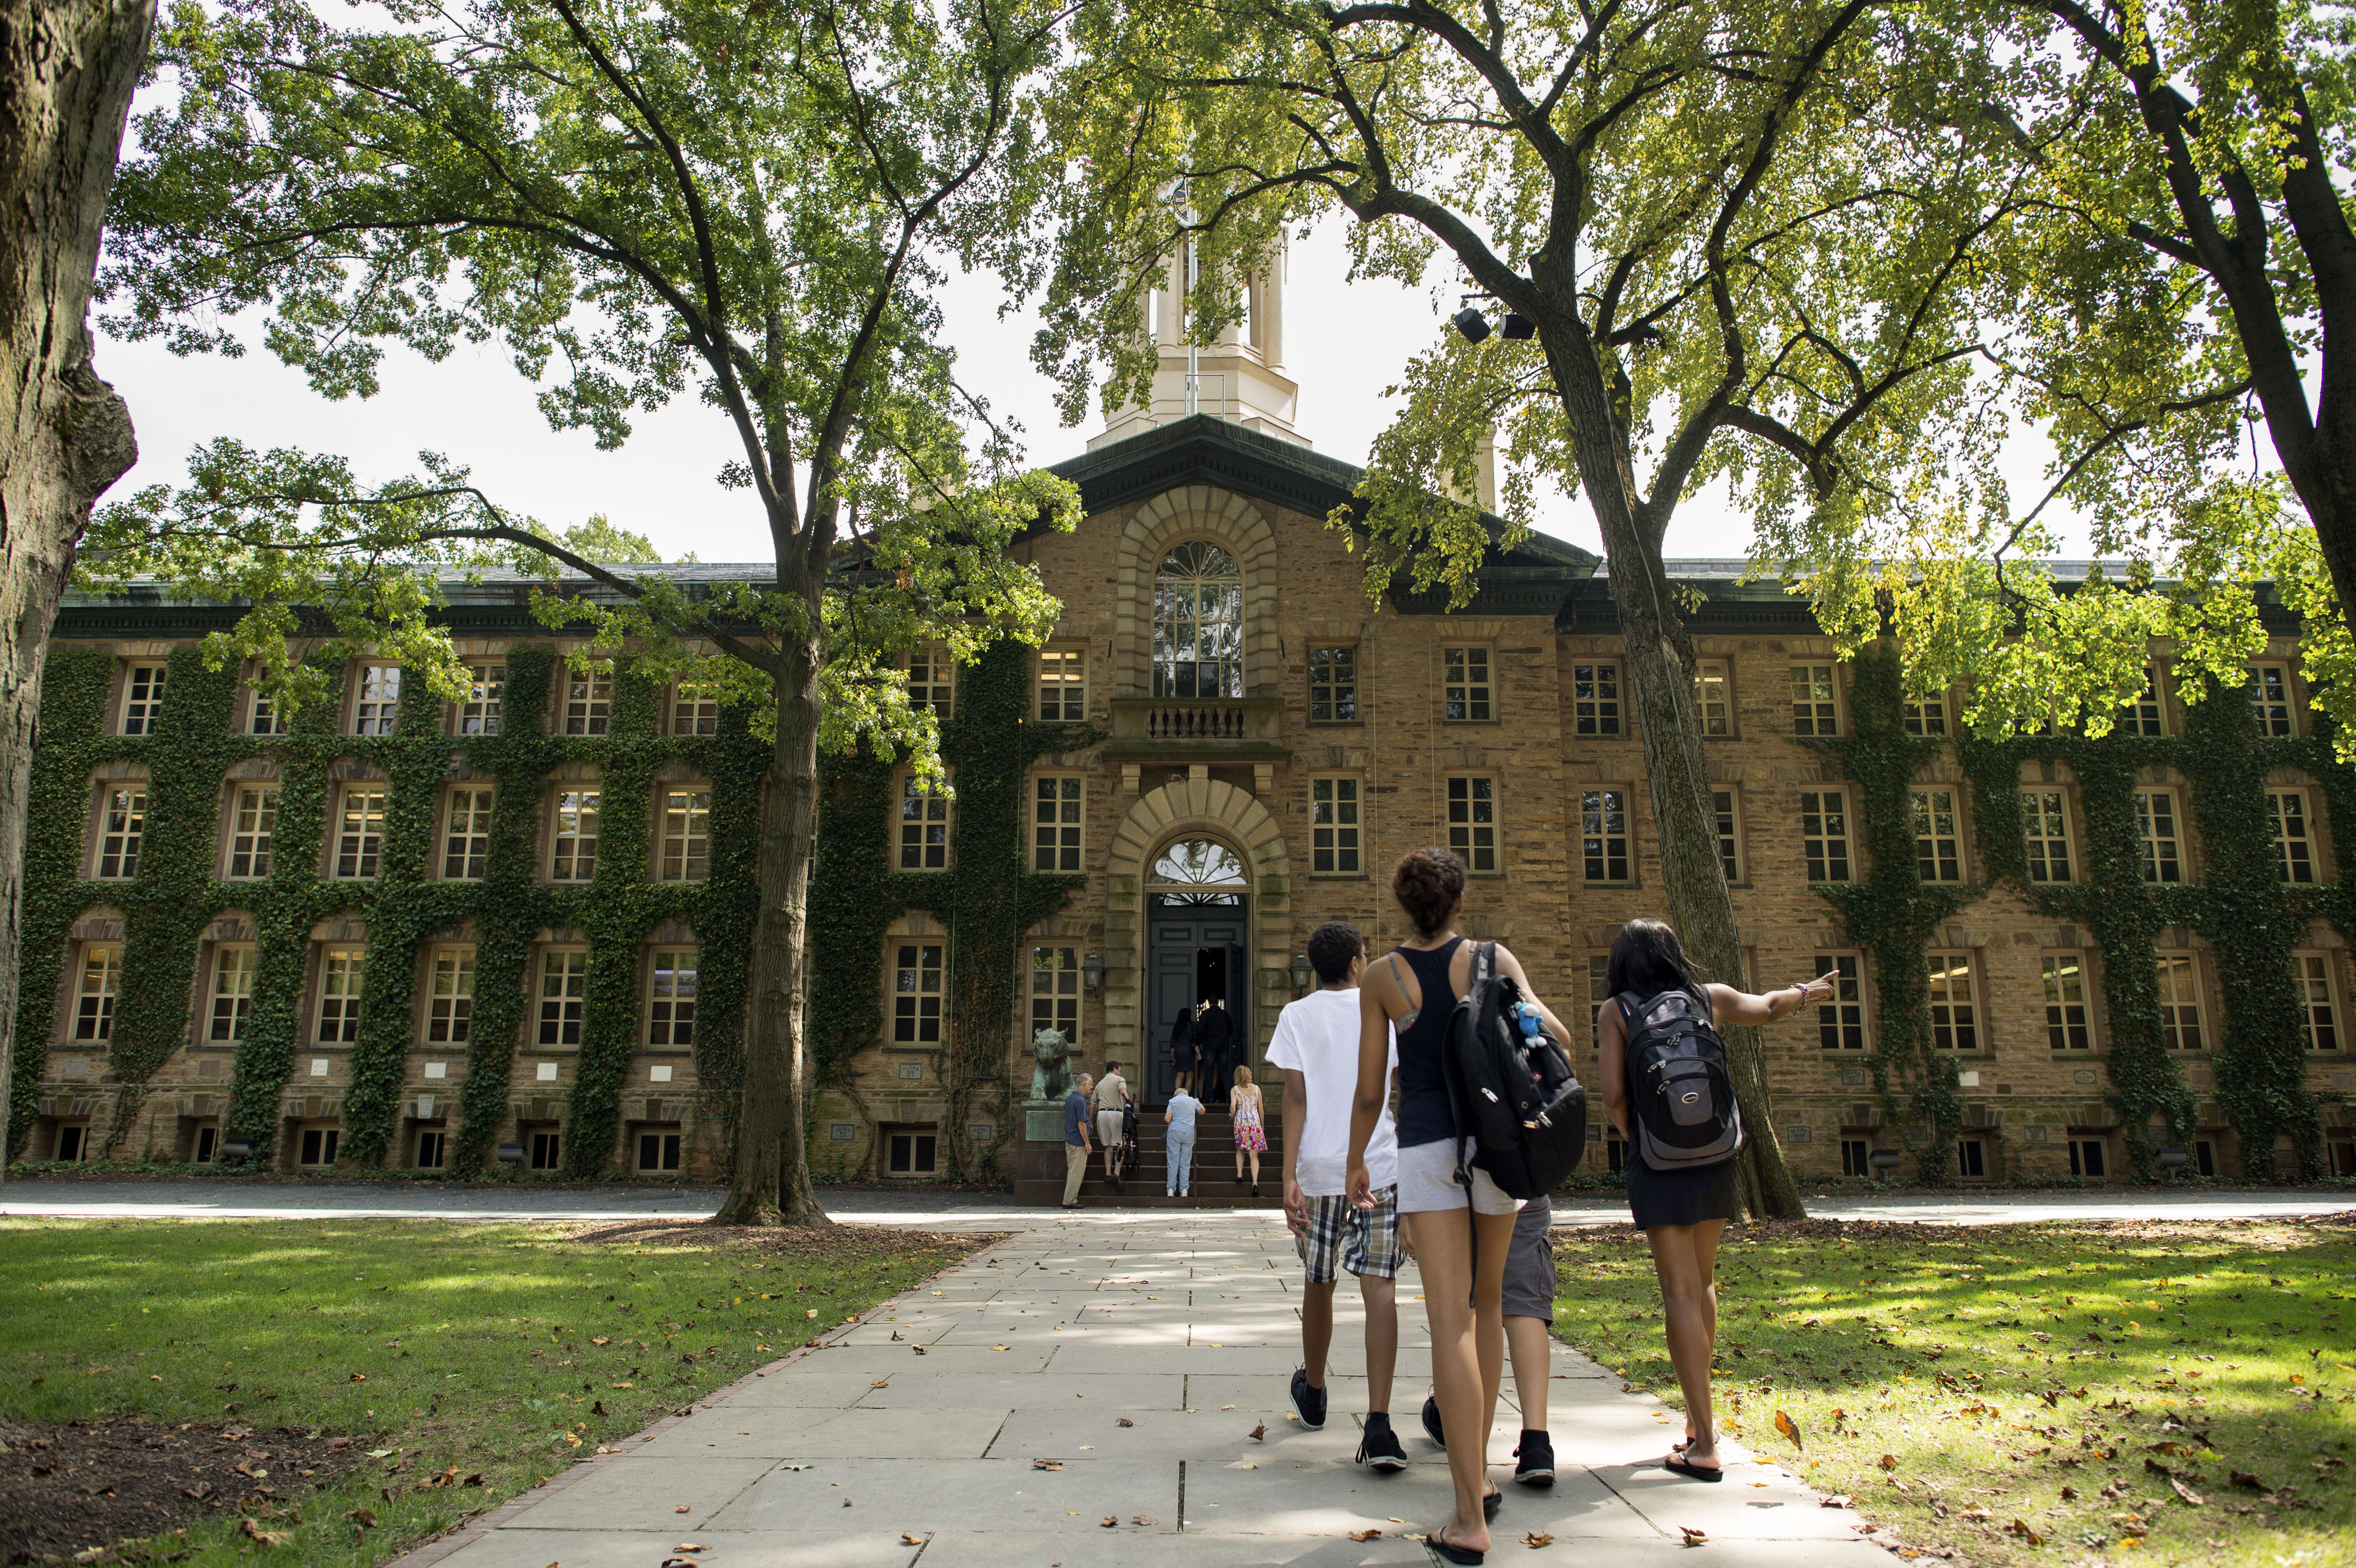 People walk on the Princeton University campus in Princeton, New Jersey, U.S., on Friday, Aug. 30, 2013.